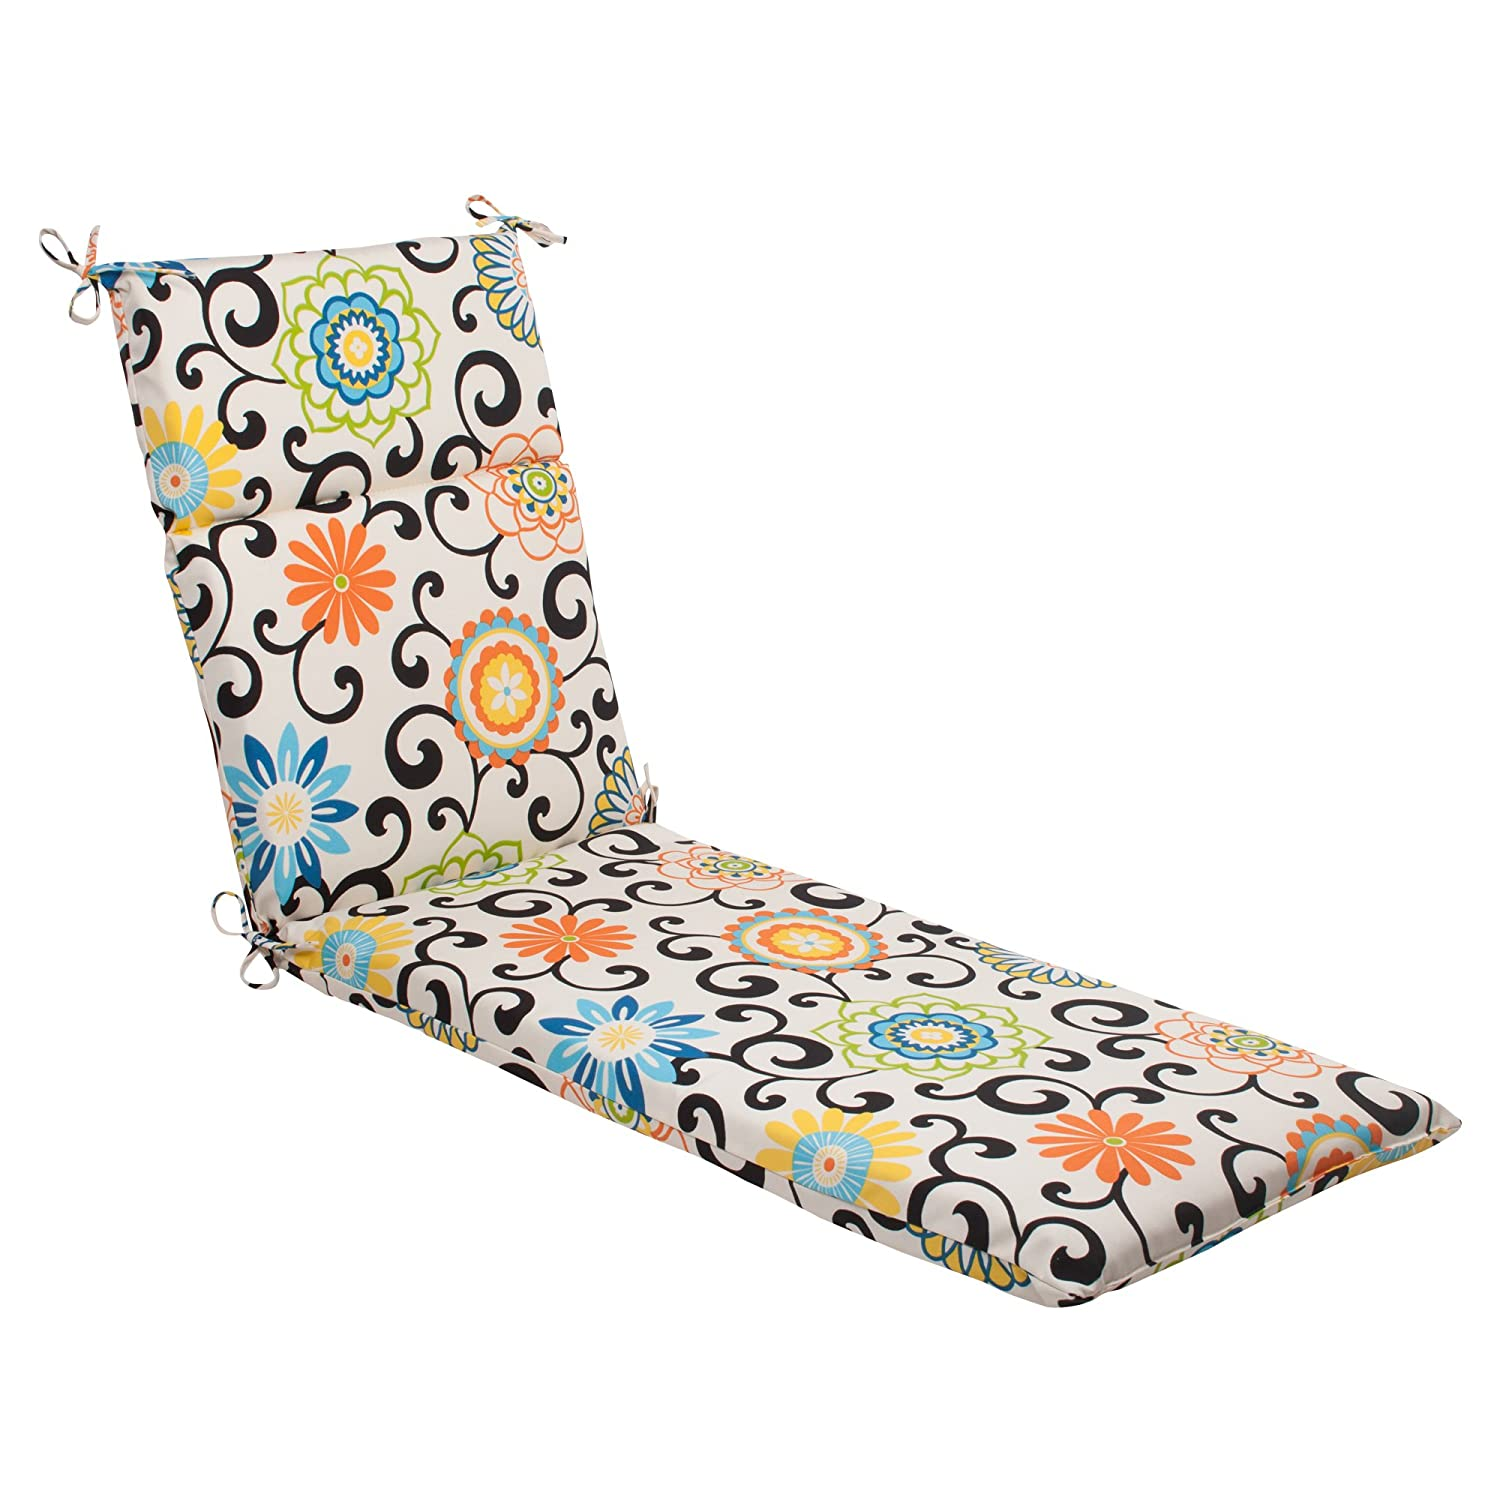 cushion on sale polywood cushions nautical chaise outdoor lounge